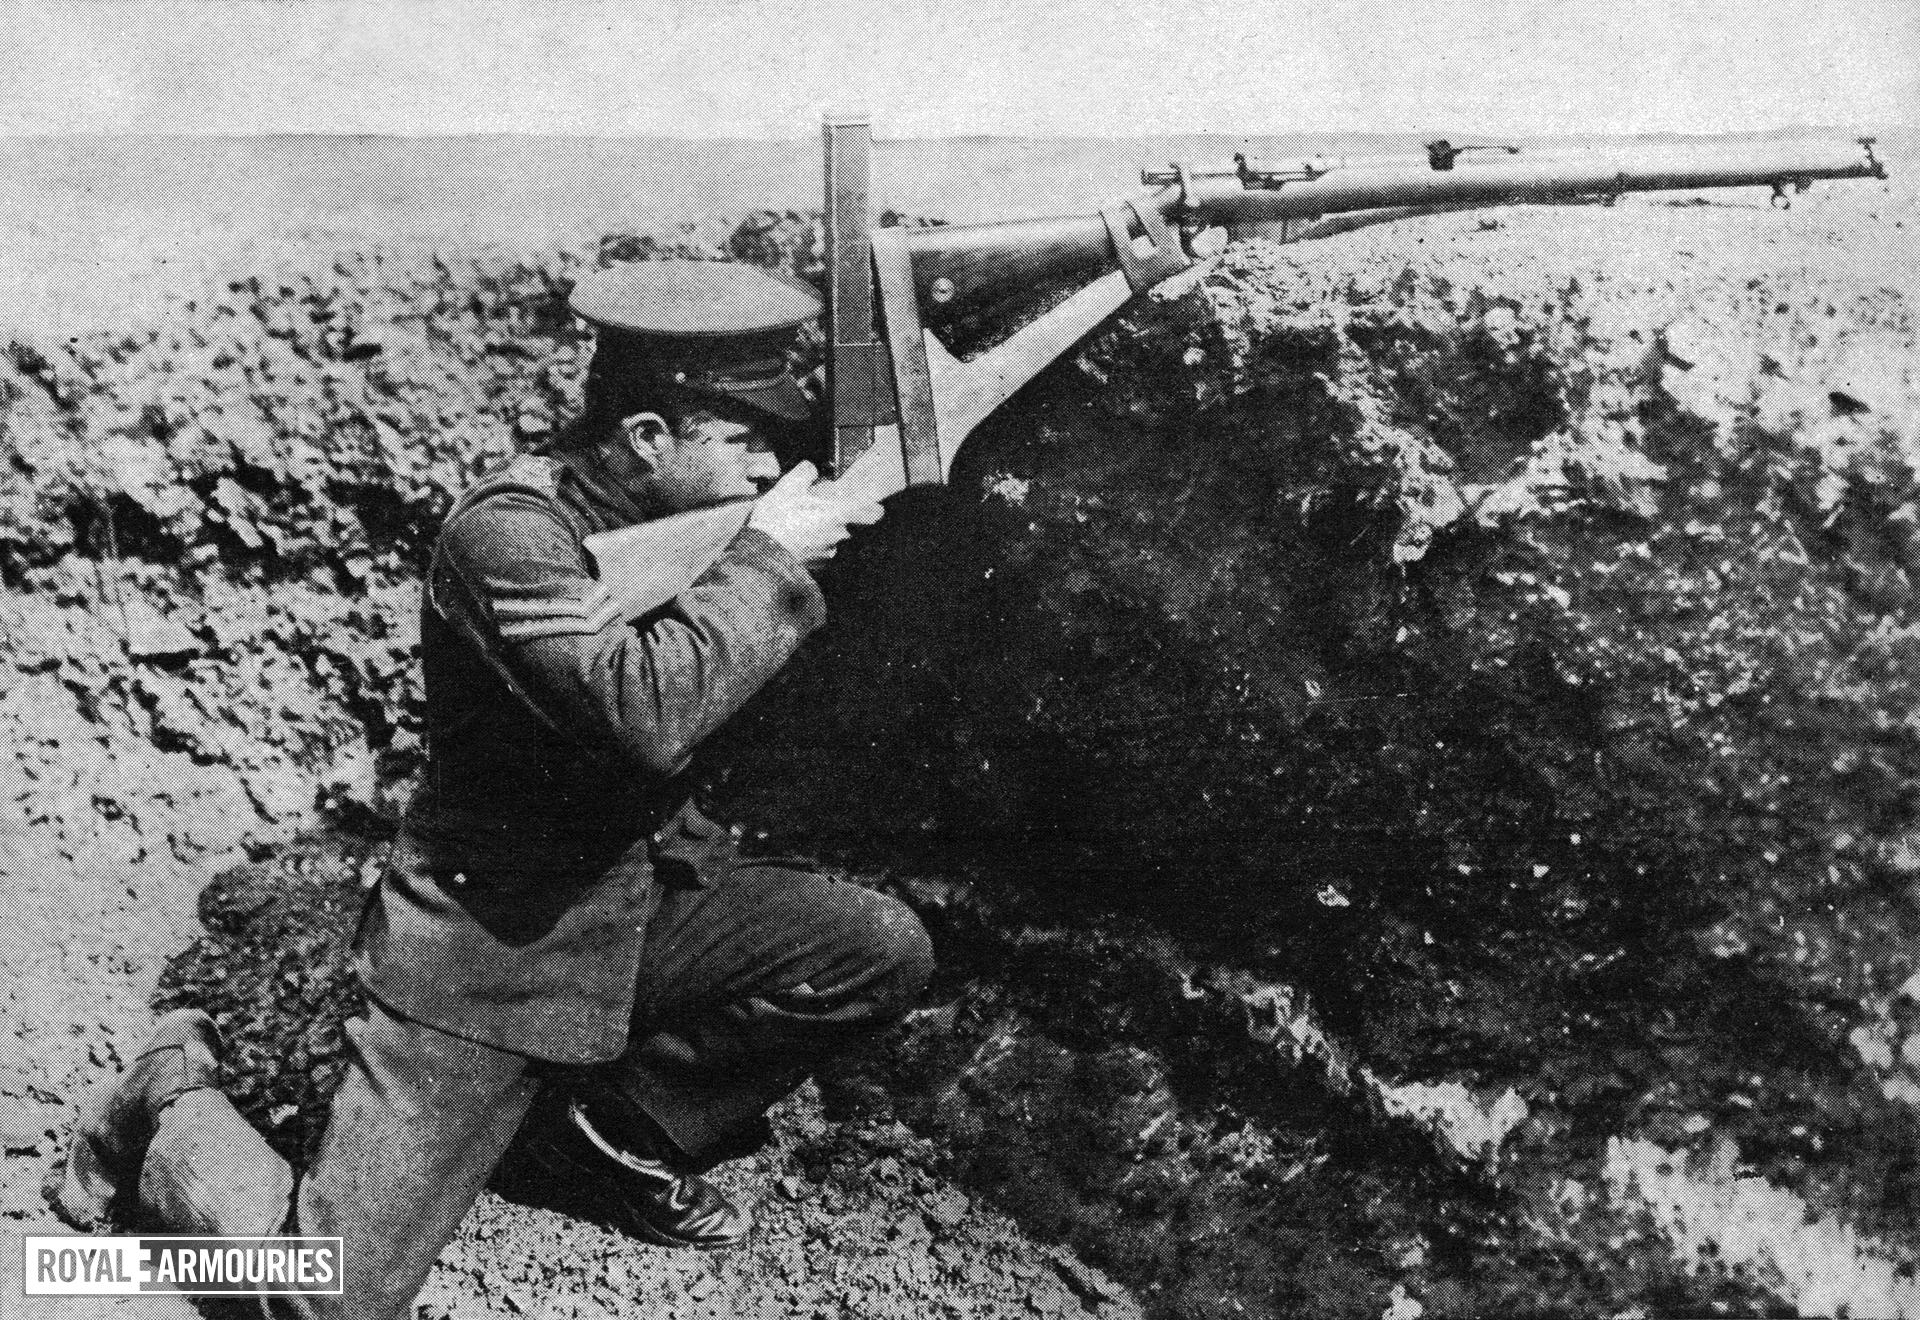 The 'Walker' periscope attachment, from an August 18th, 1915 issue of the 'Illustrated War News'.